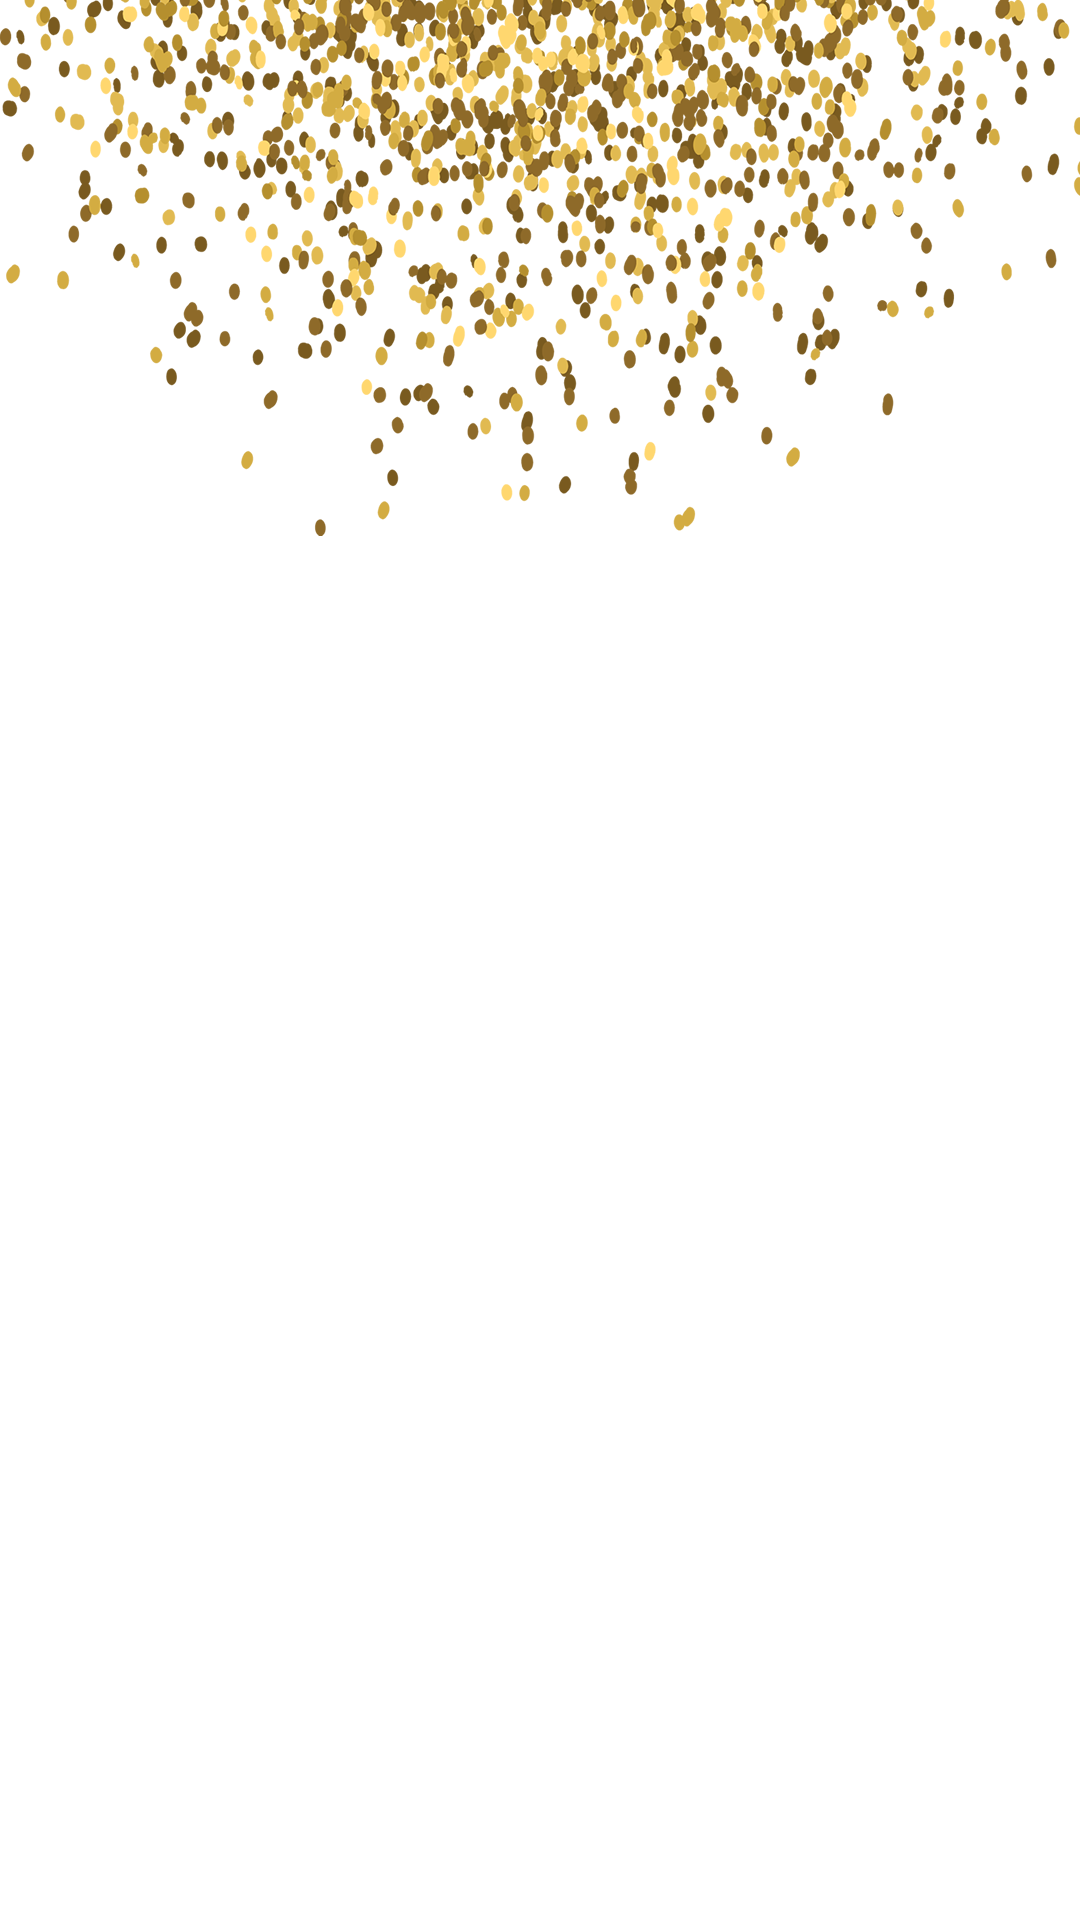 Gold sparkle png clipart images gallery for free download.